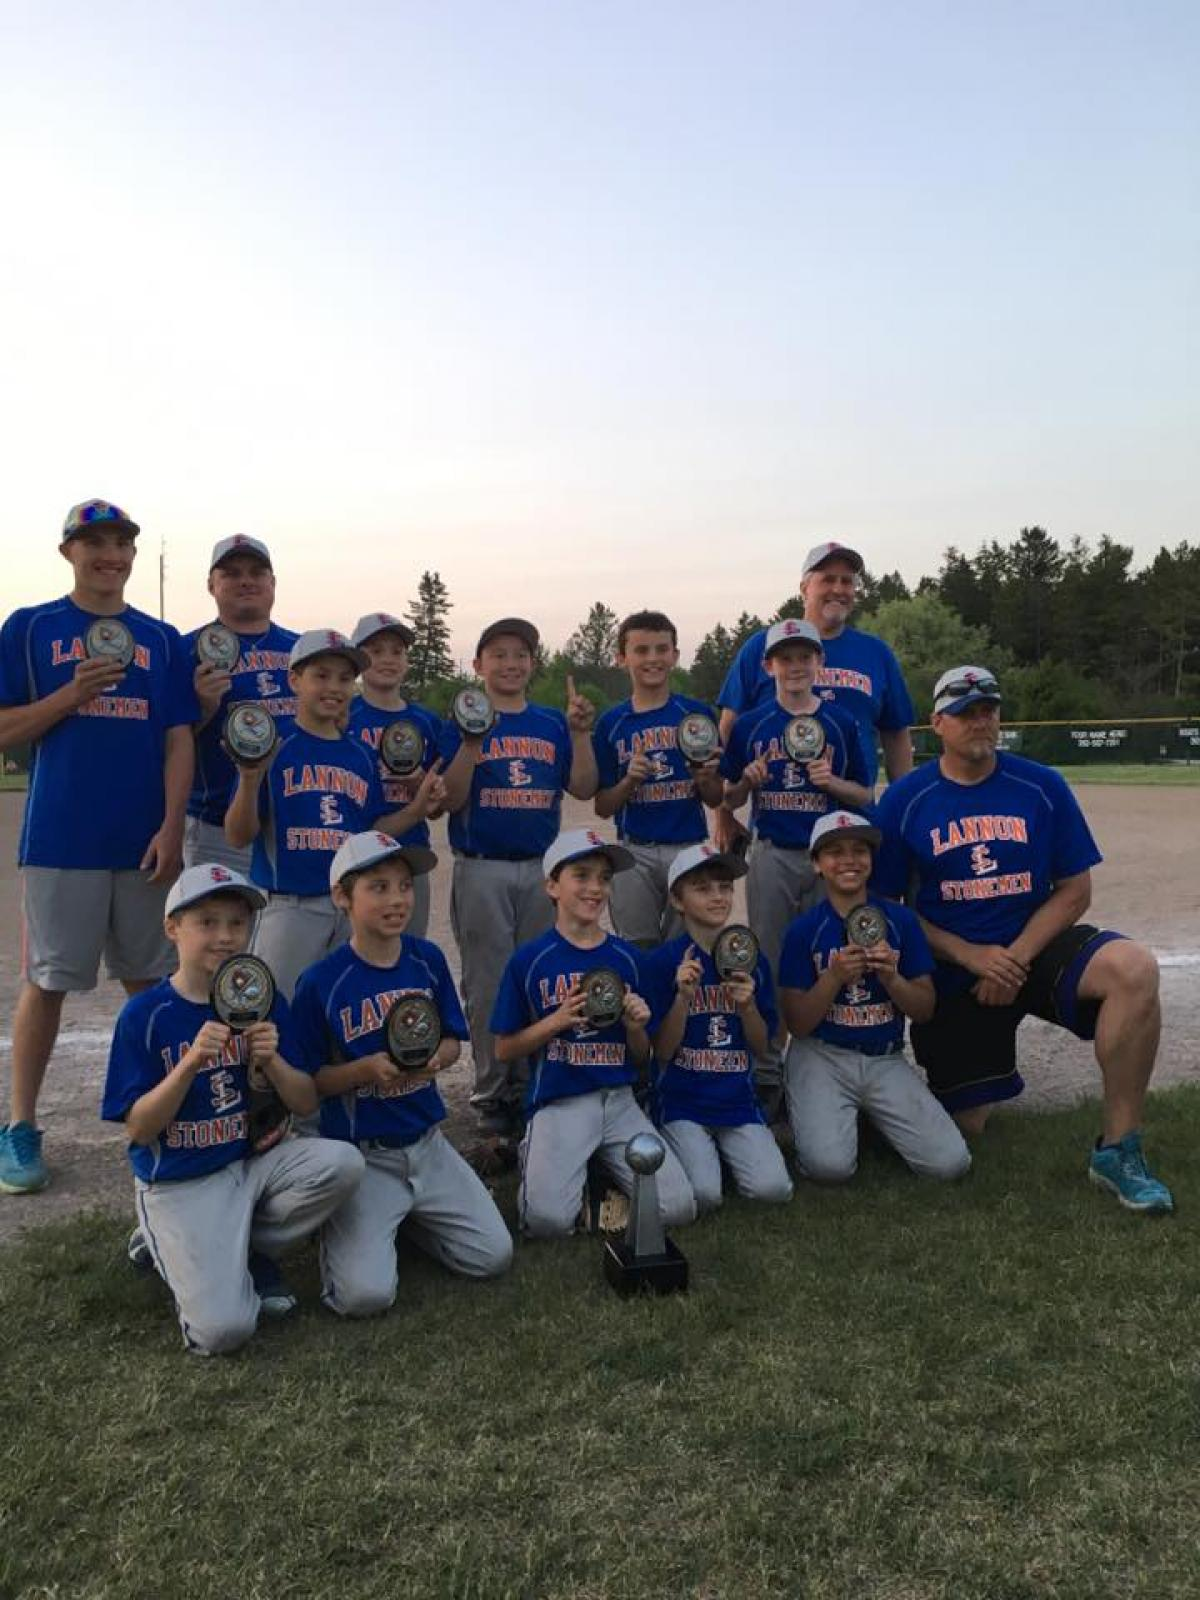 Lannon Stonemen U10 Team Wins Tournament!